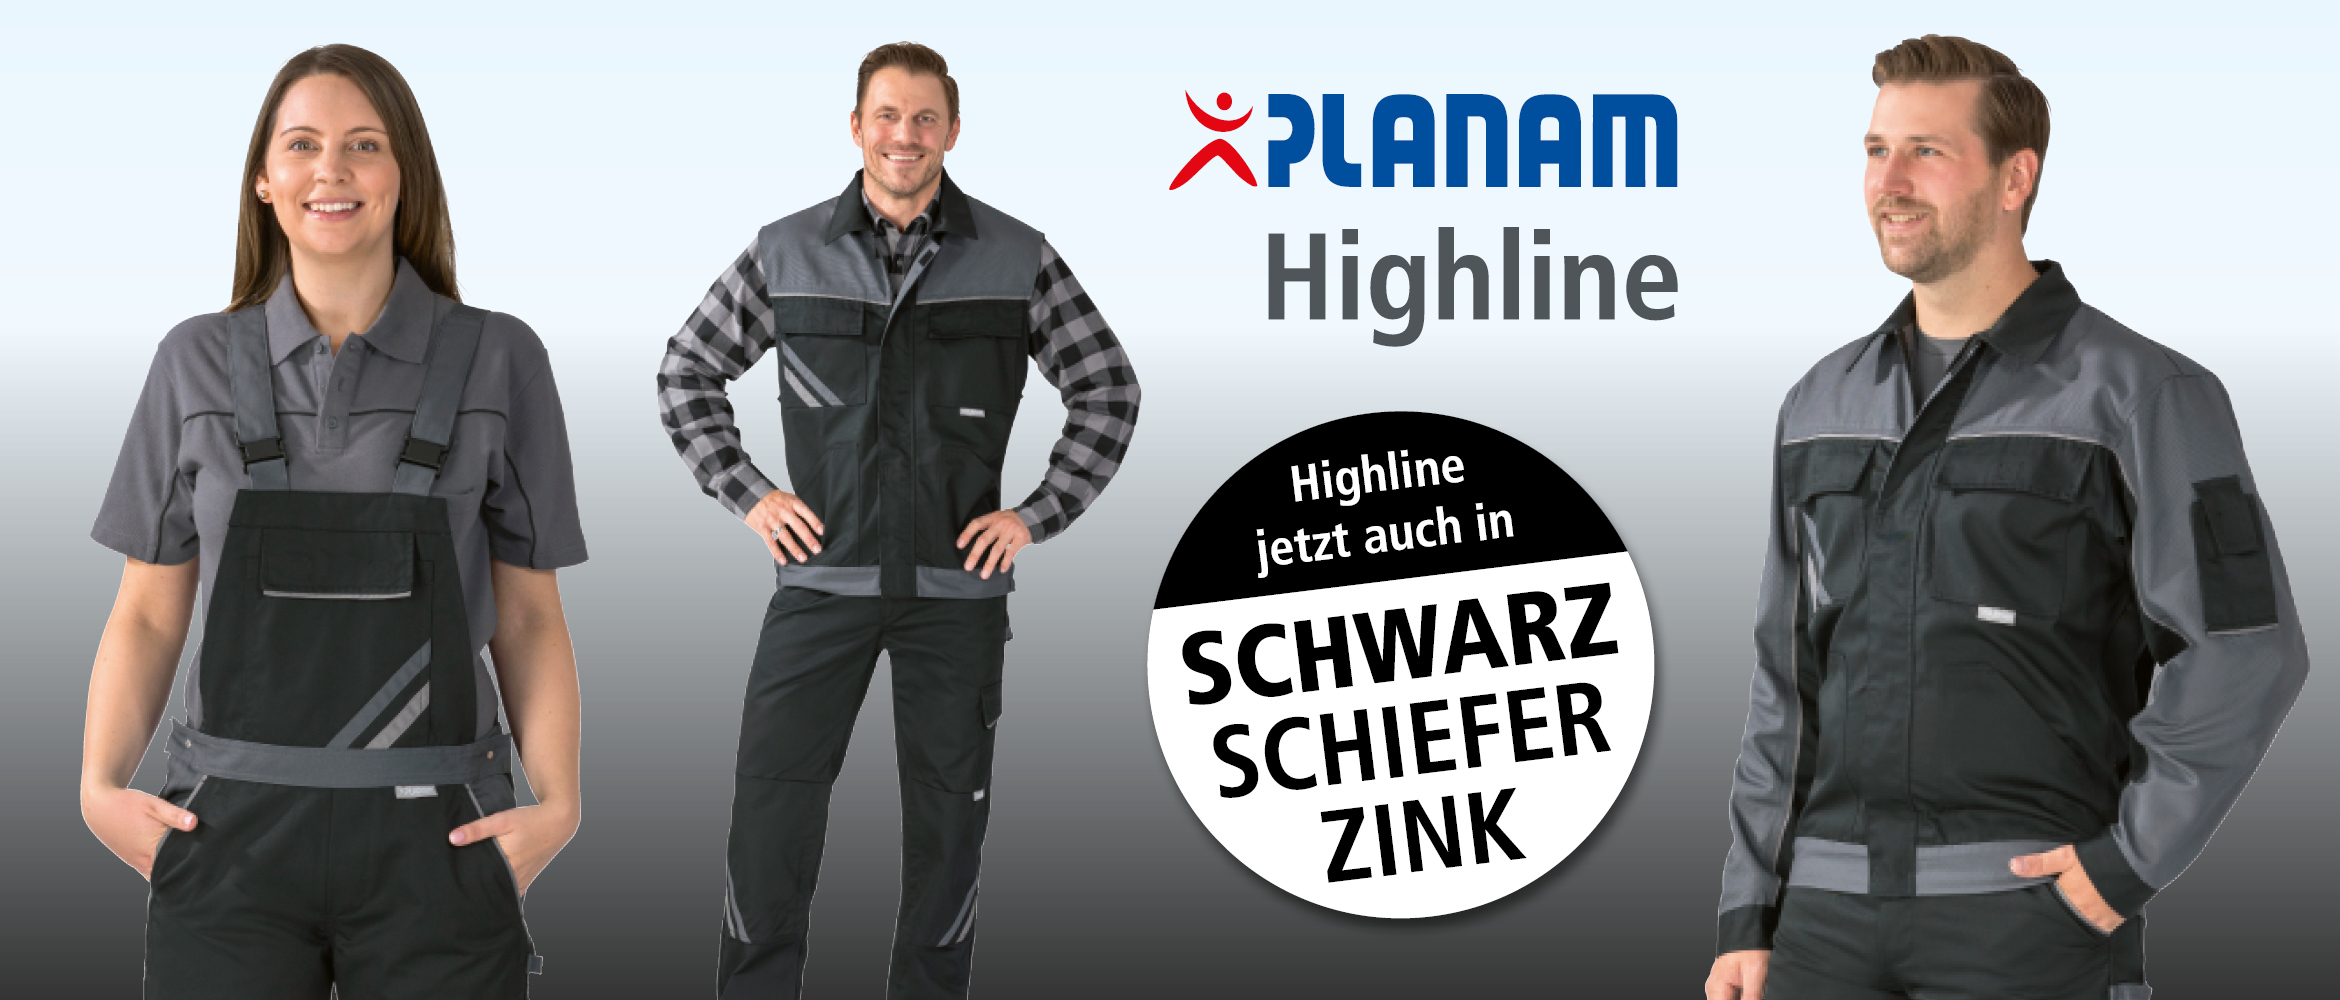 Slider Planam Highline schwarz